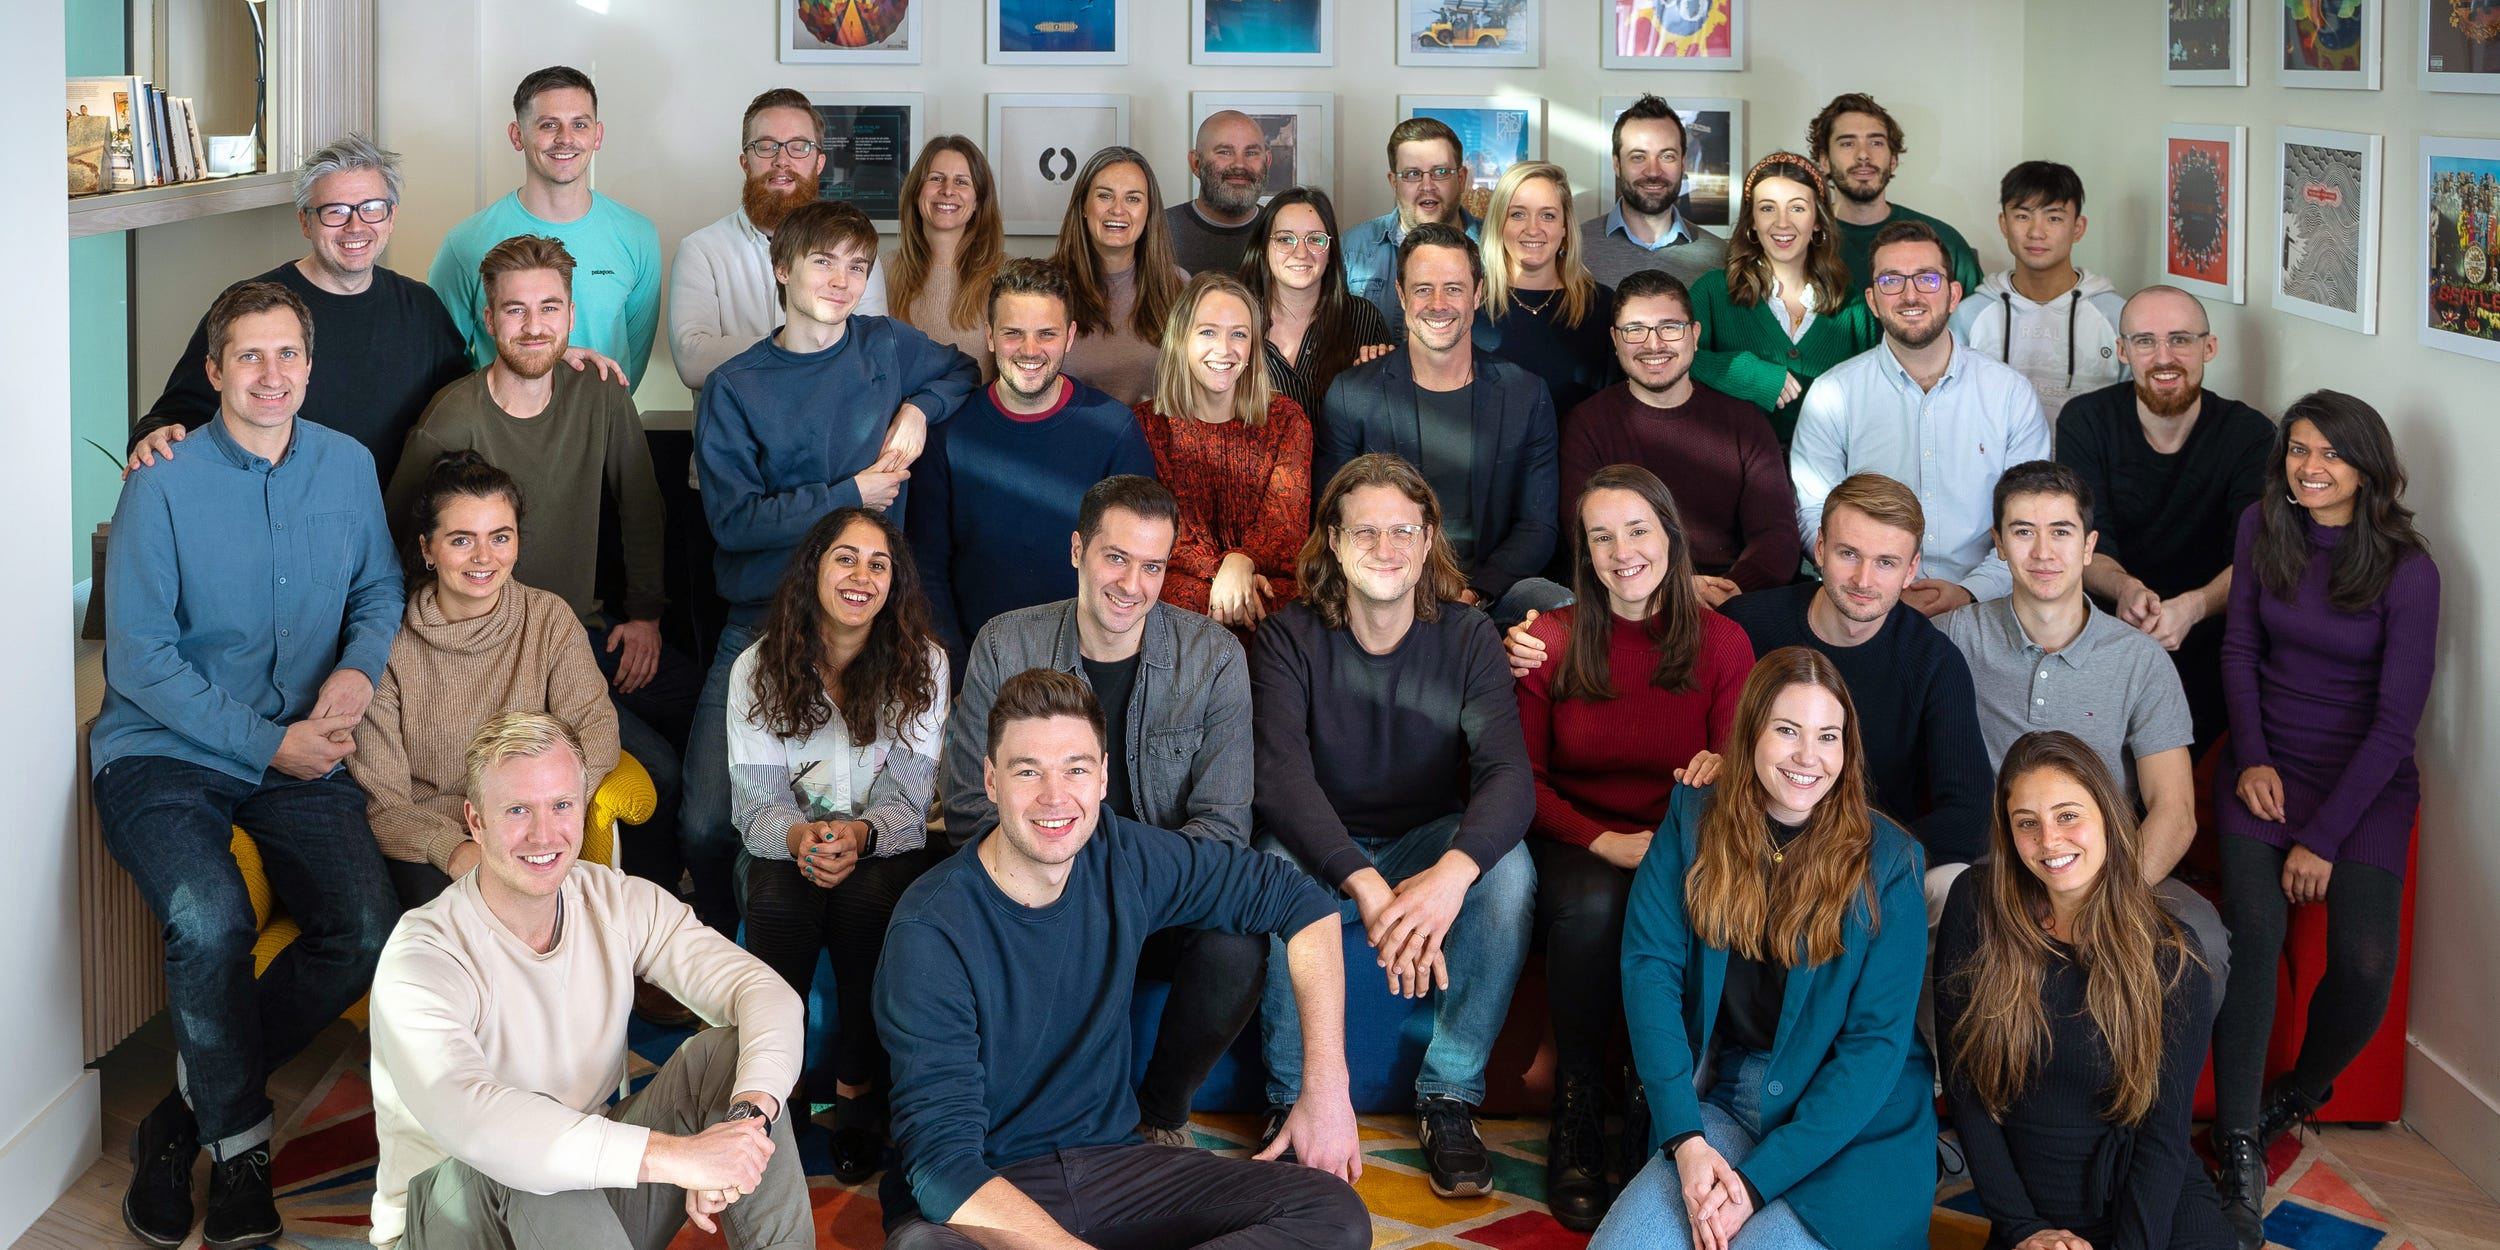 Check out the pitch deck this London-based startup used to raise $10 million to tackle mental health in the workplace - deals in retail